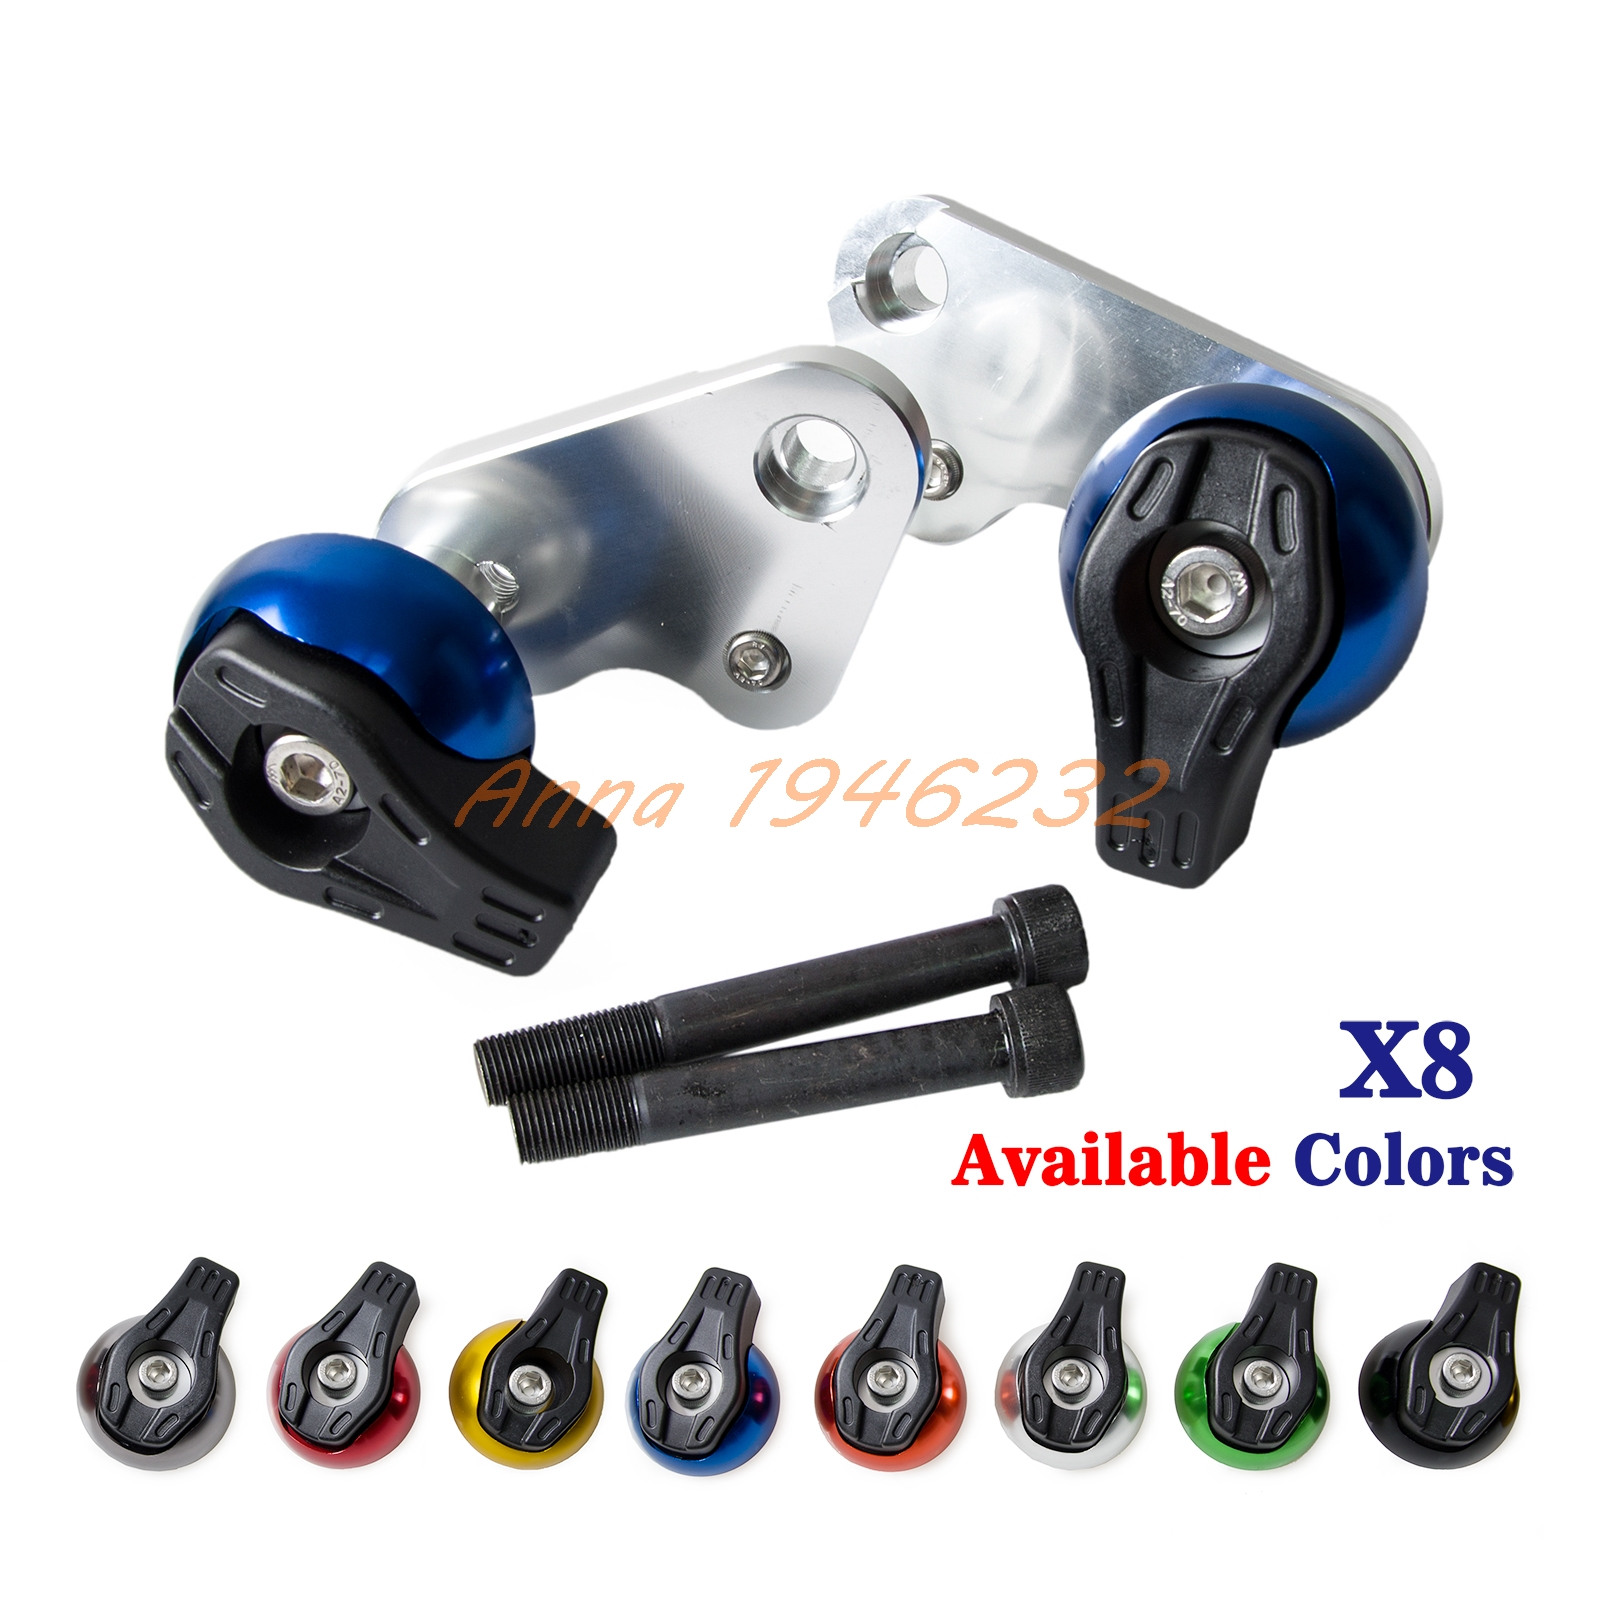 Motorcycle CNC Aluminium Frame Sliders Crash Pads Protector For ...